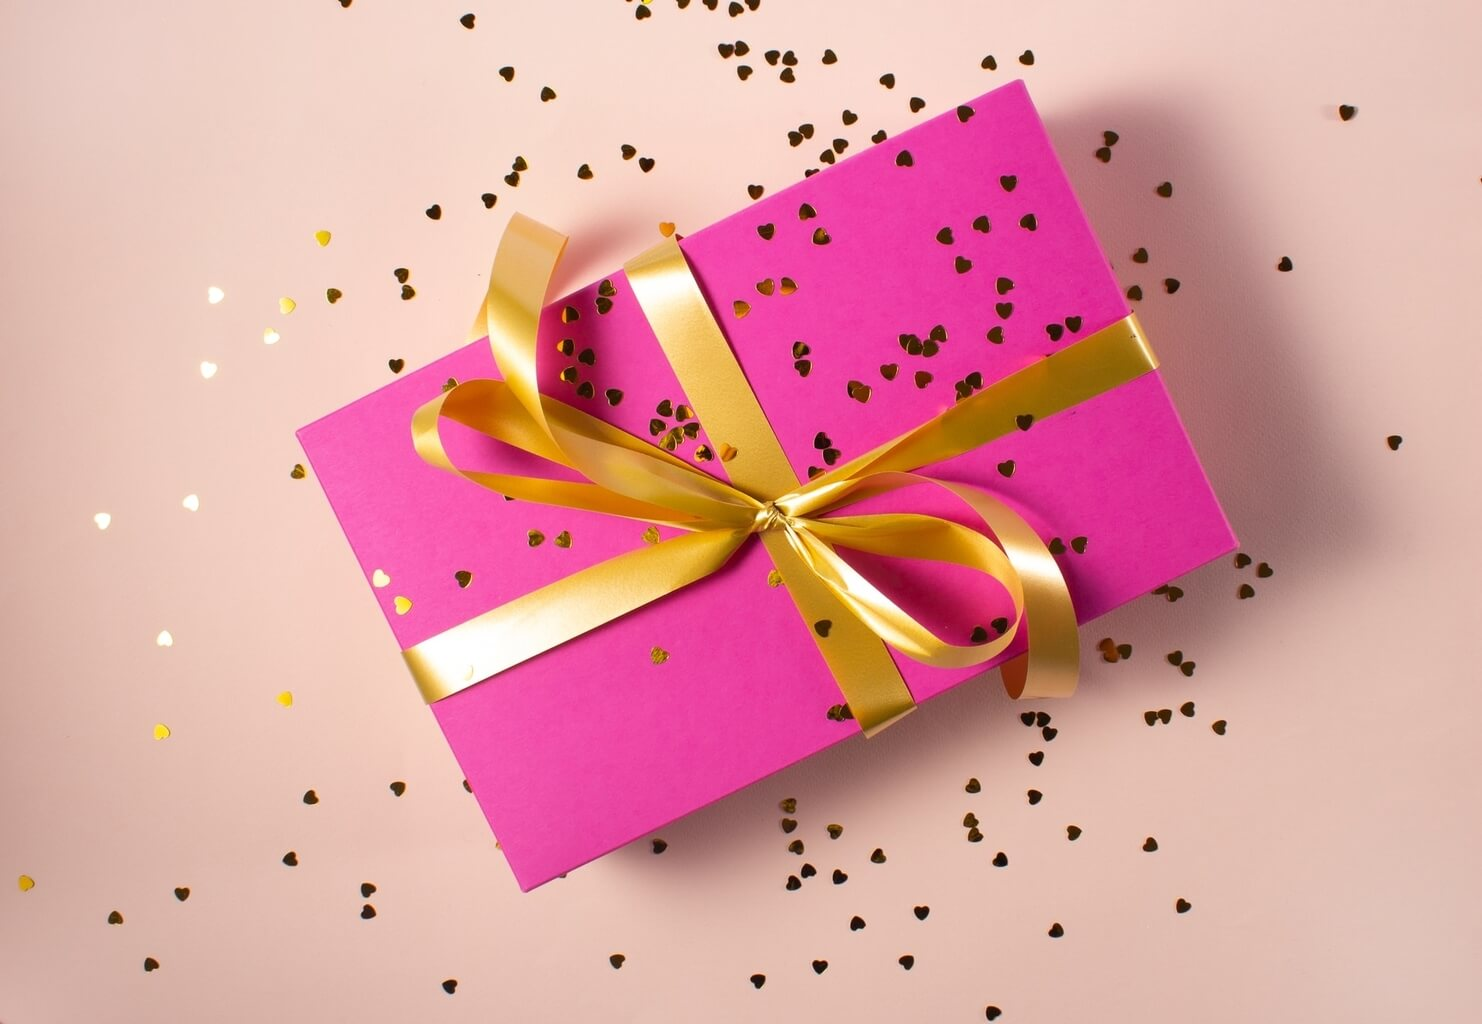 A picture of a ping gift box viewed from overhead. It is wrapped with a gold ribbon and gold confetti is scattered on and around the box.